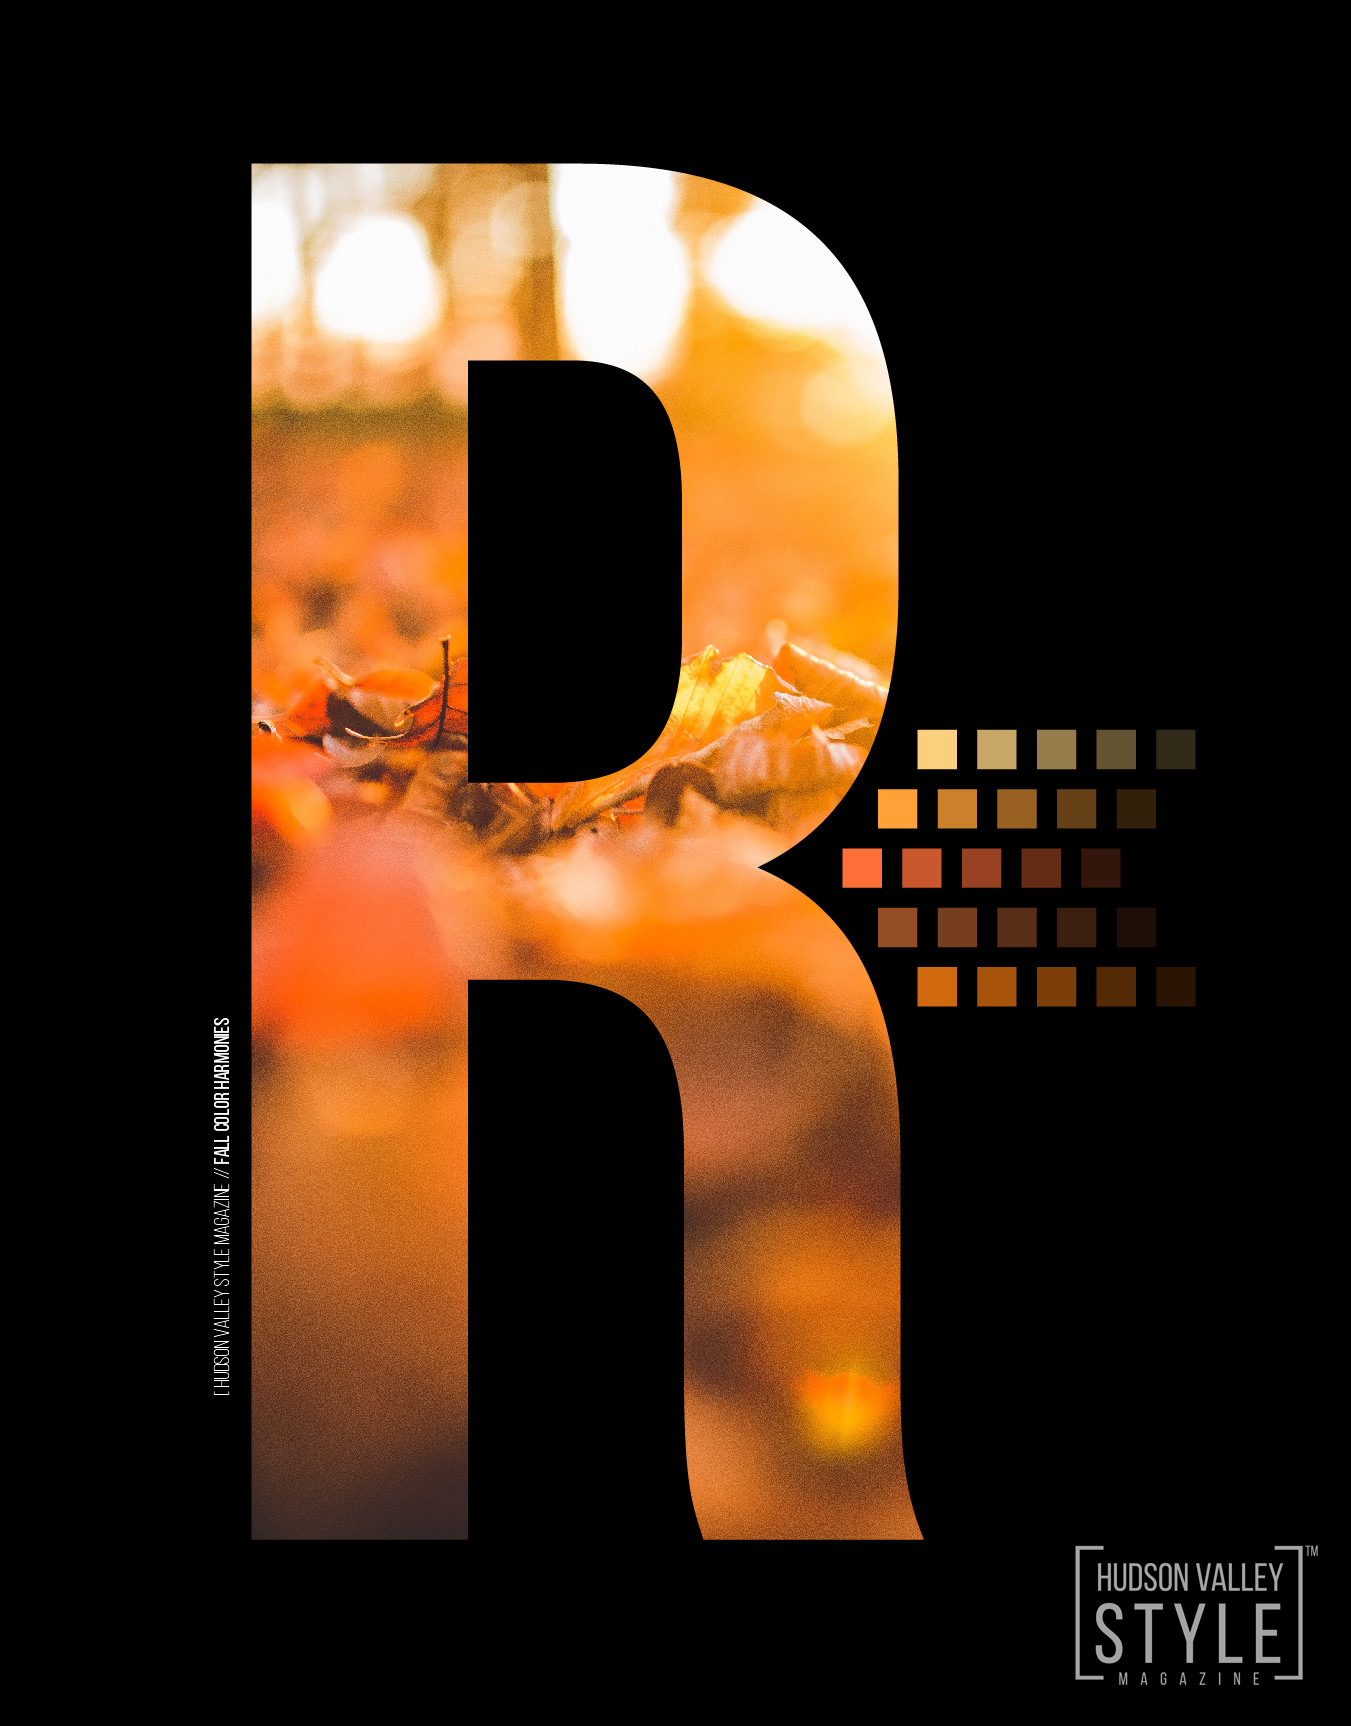 Hudson Valley Style Magazine / Fall Color Harmonies/ Maxwell Alexander Design / Typography / Graphic Design